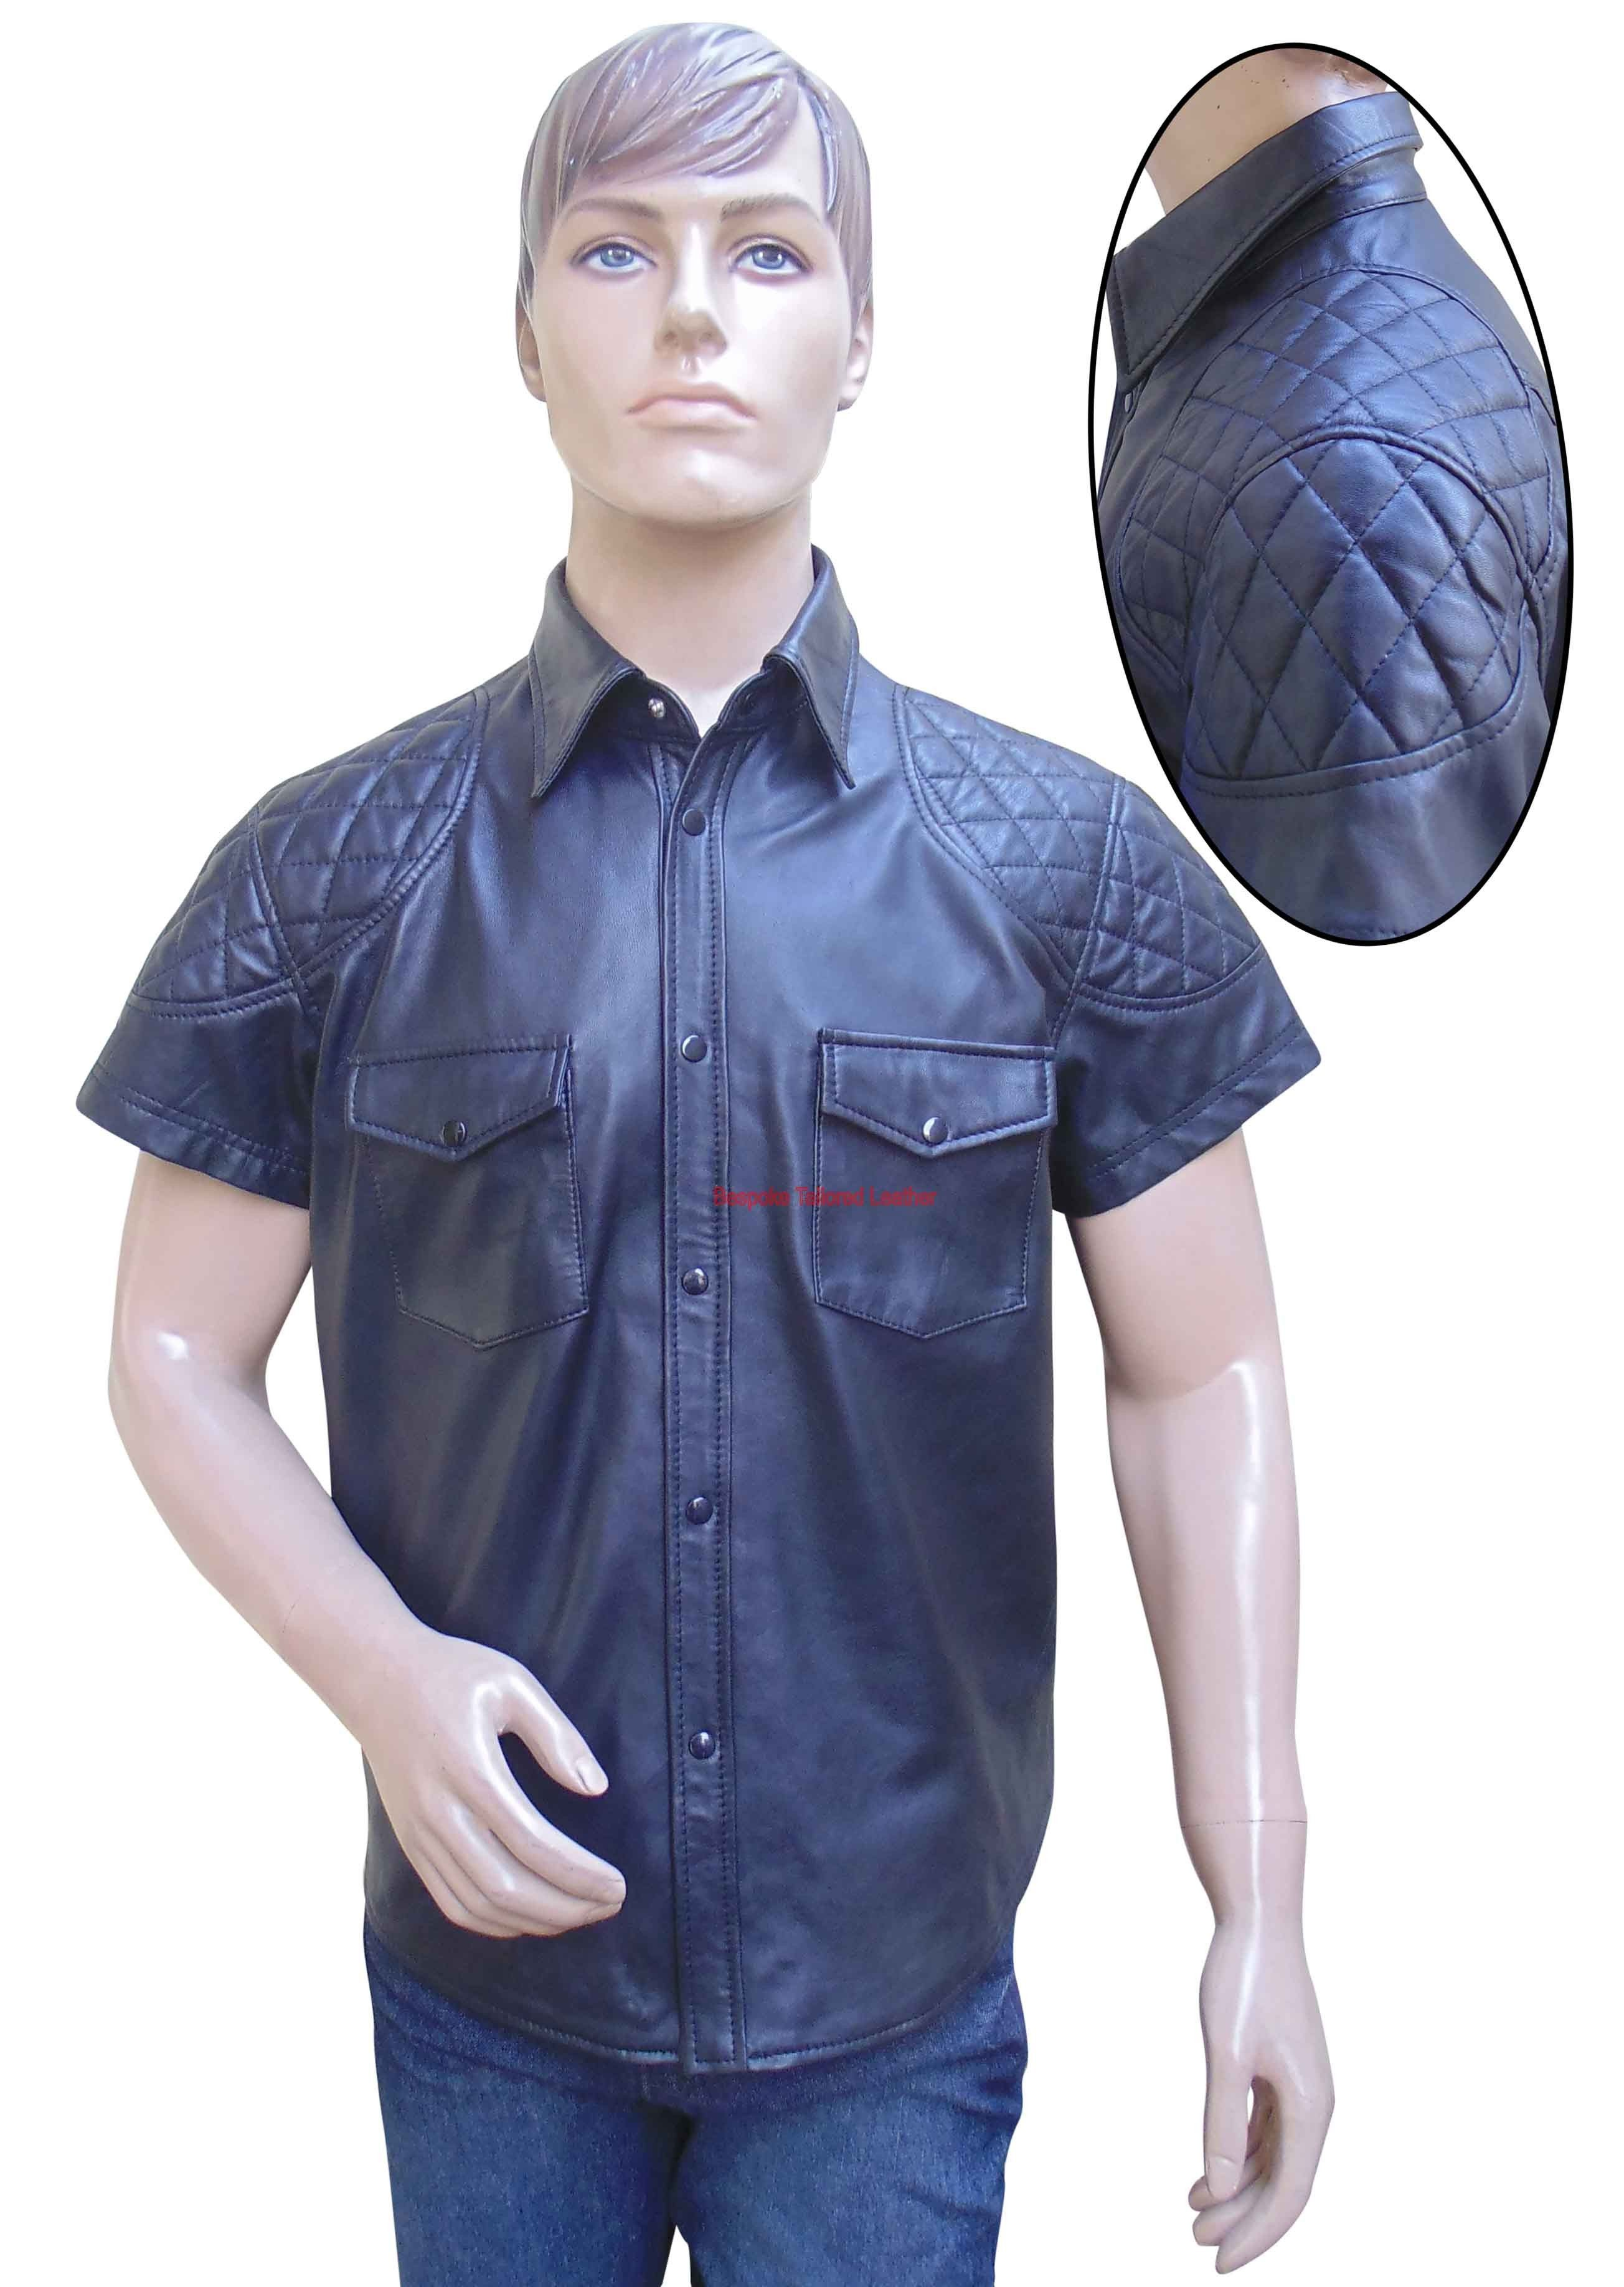 Leather Shirt With Qulting Design - Sheep Nappa - Custom Made To Order Leather Shirt With Qulting Design, Two Front pocket, Real Sheeep Nappa.  We can also make the same garment to your own specific Leather color and colored piping size at extra cost., please choose Custom Made from selection list